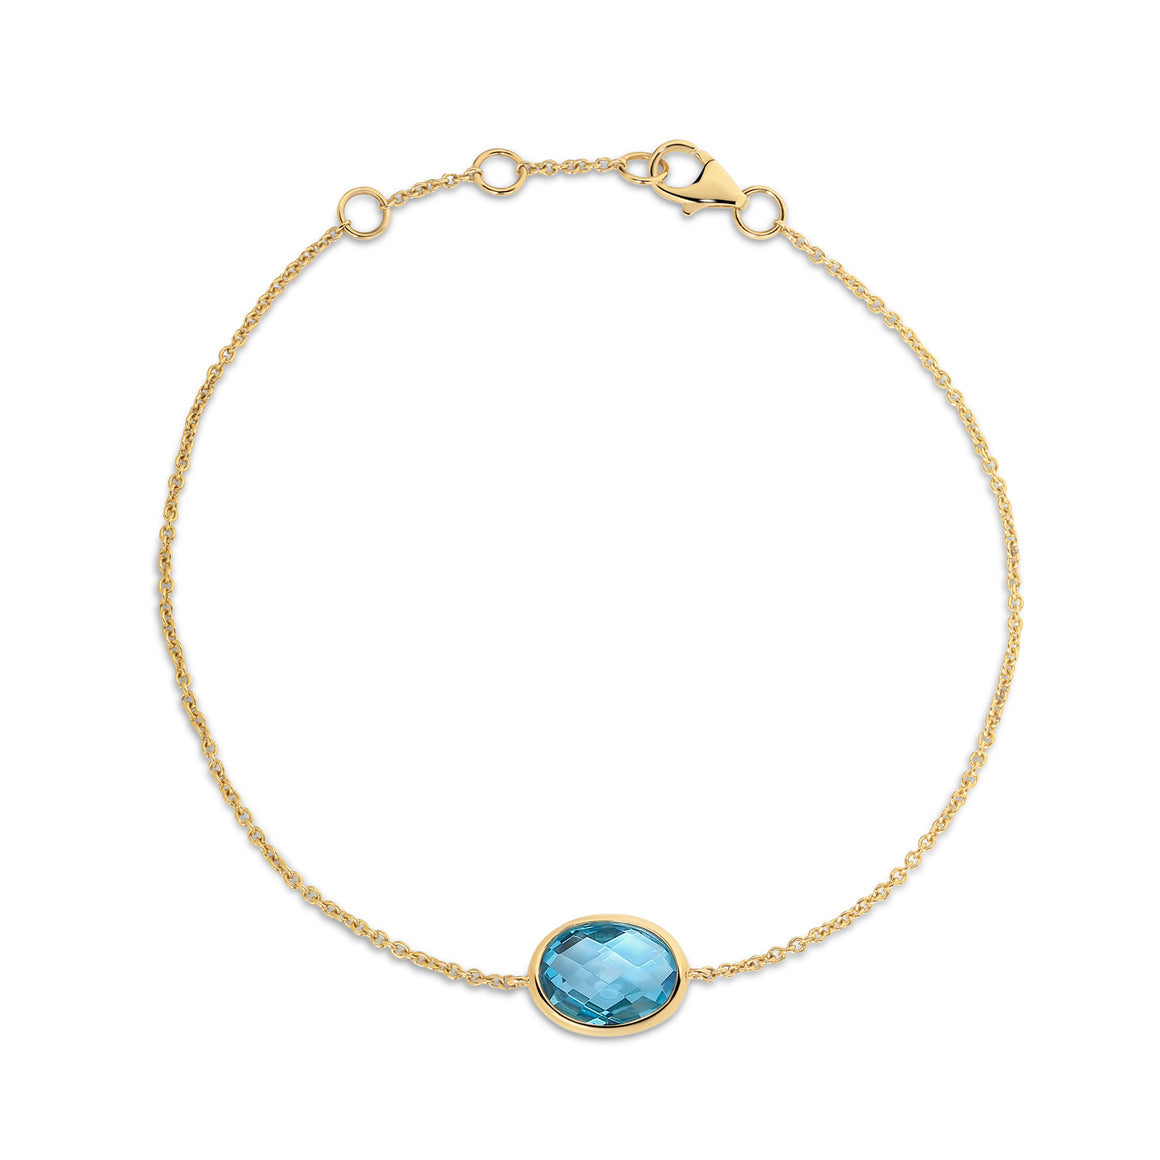 18ct Gold and Topaz Bracelet - Gemma Stone  ABN:51 621 127 866